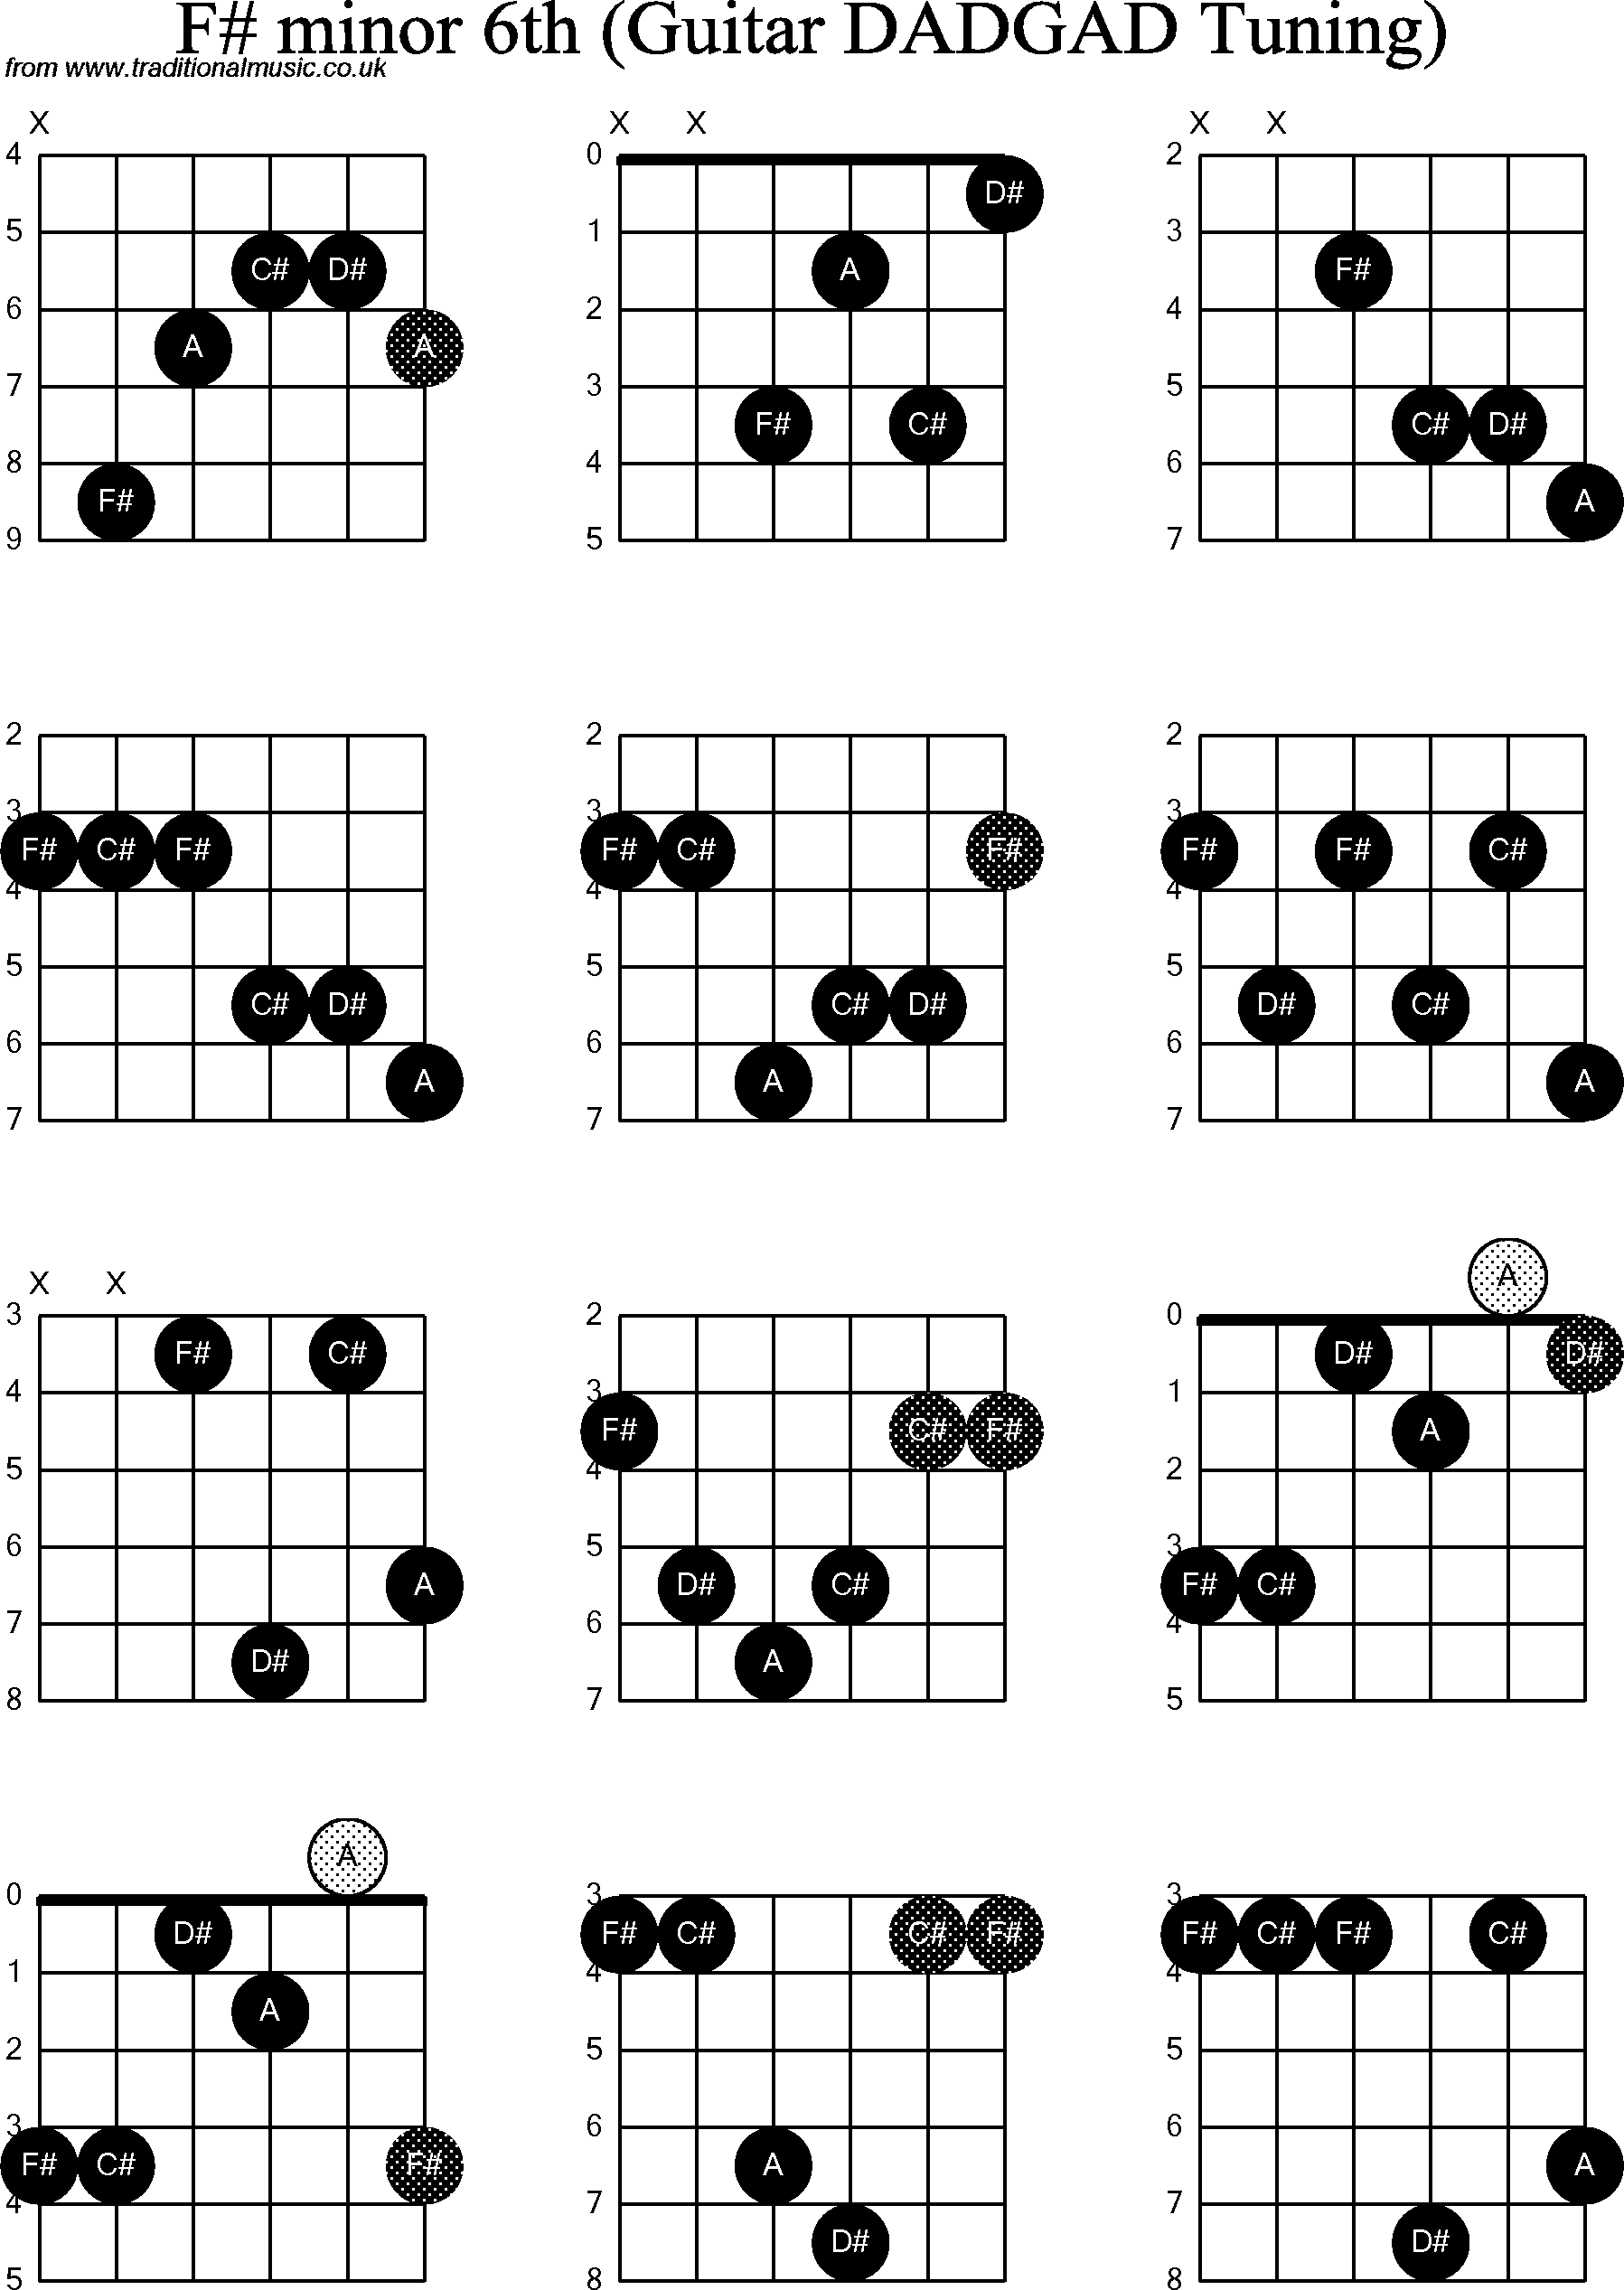 Chord Diagrams D Modal Guitar Dadgad F Sharp Minor6th